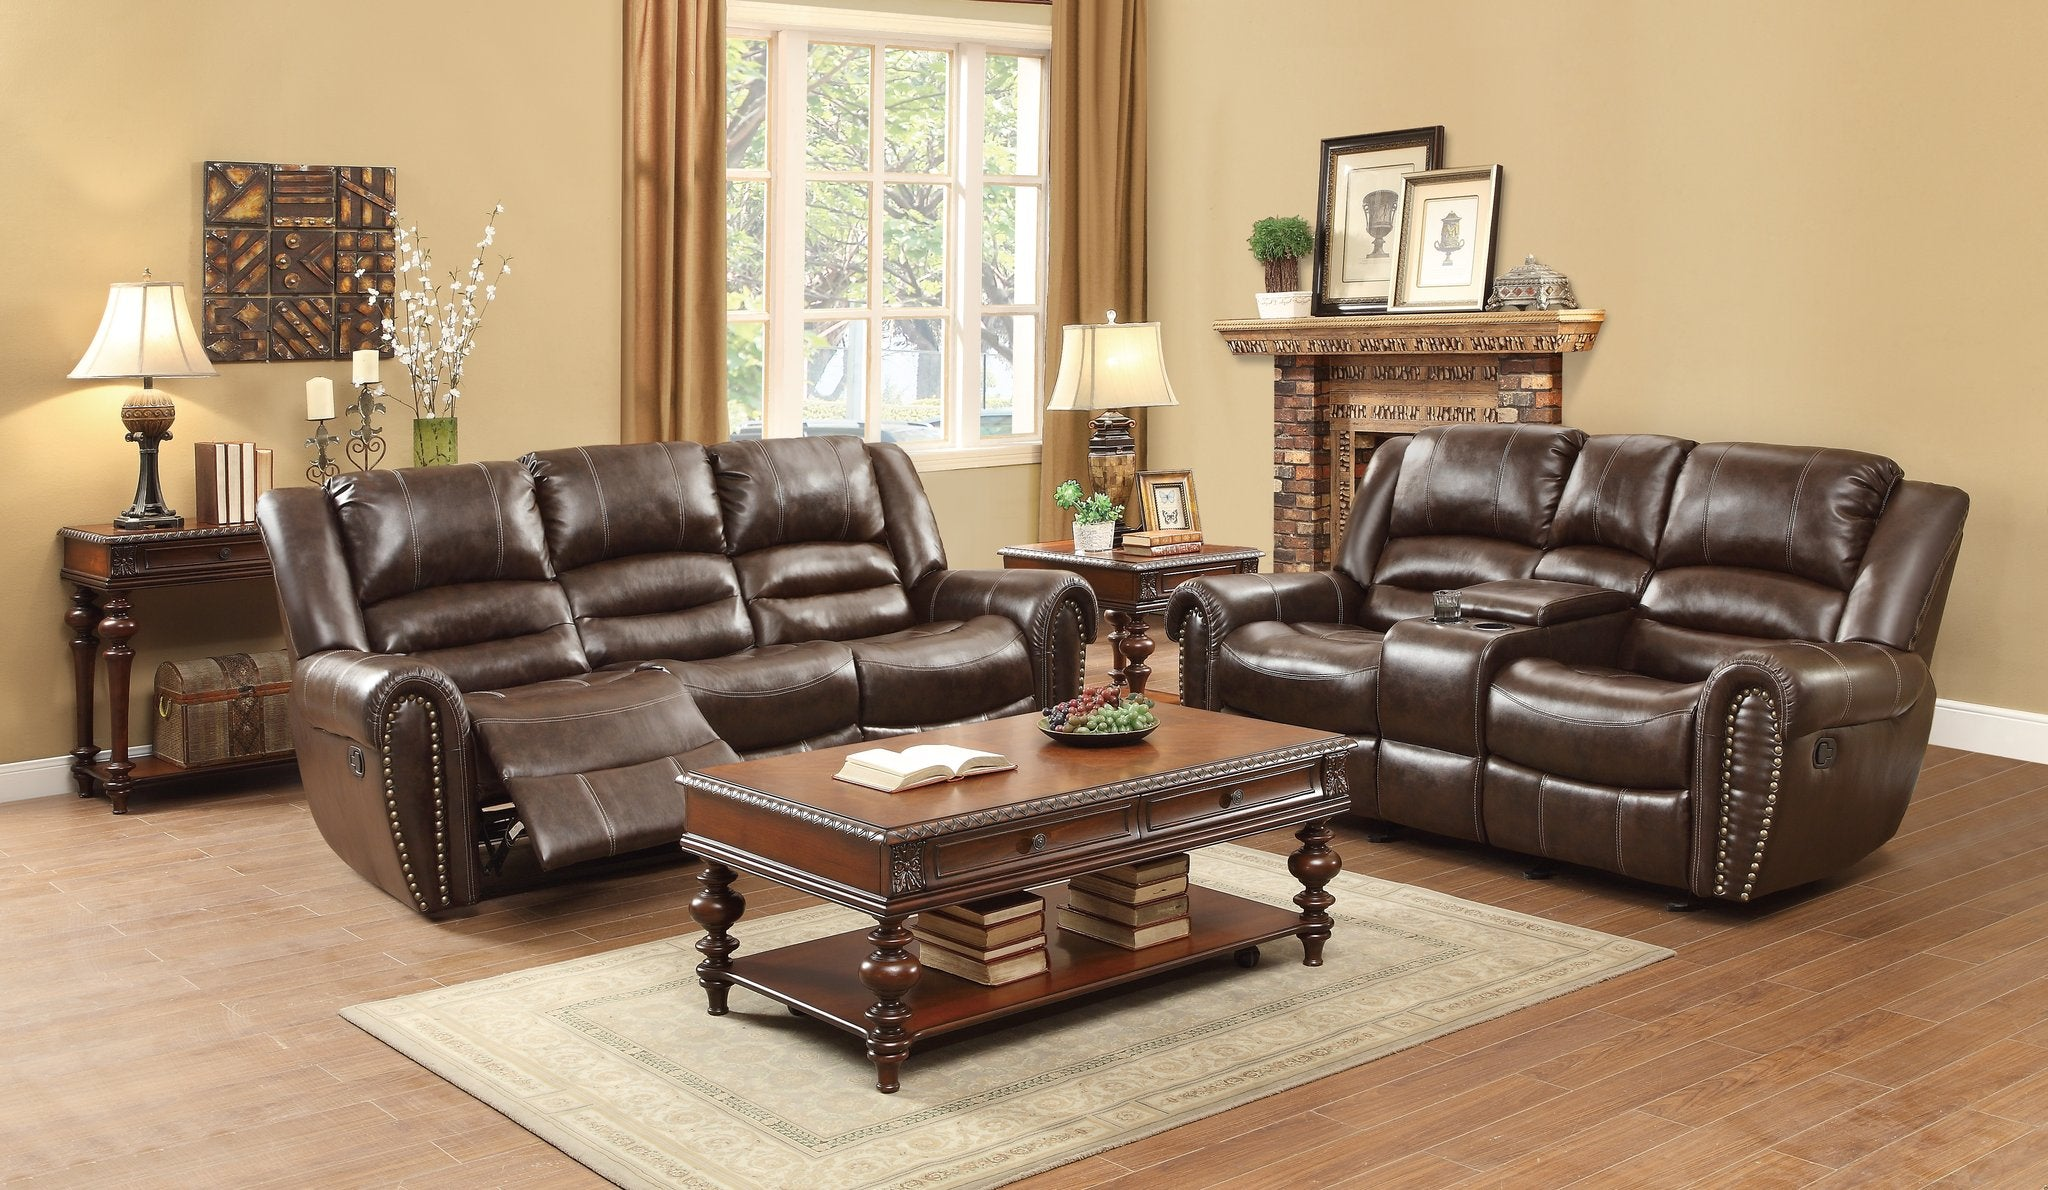 Center Hill Brown Bonded Leather Double Reclining Living Room Set   9668